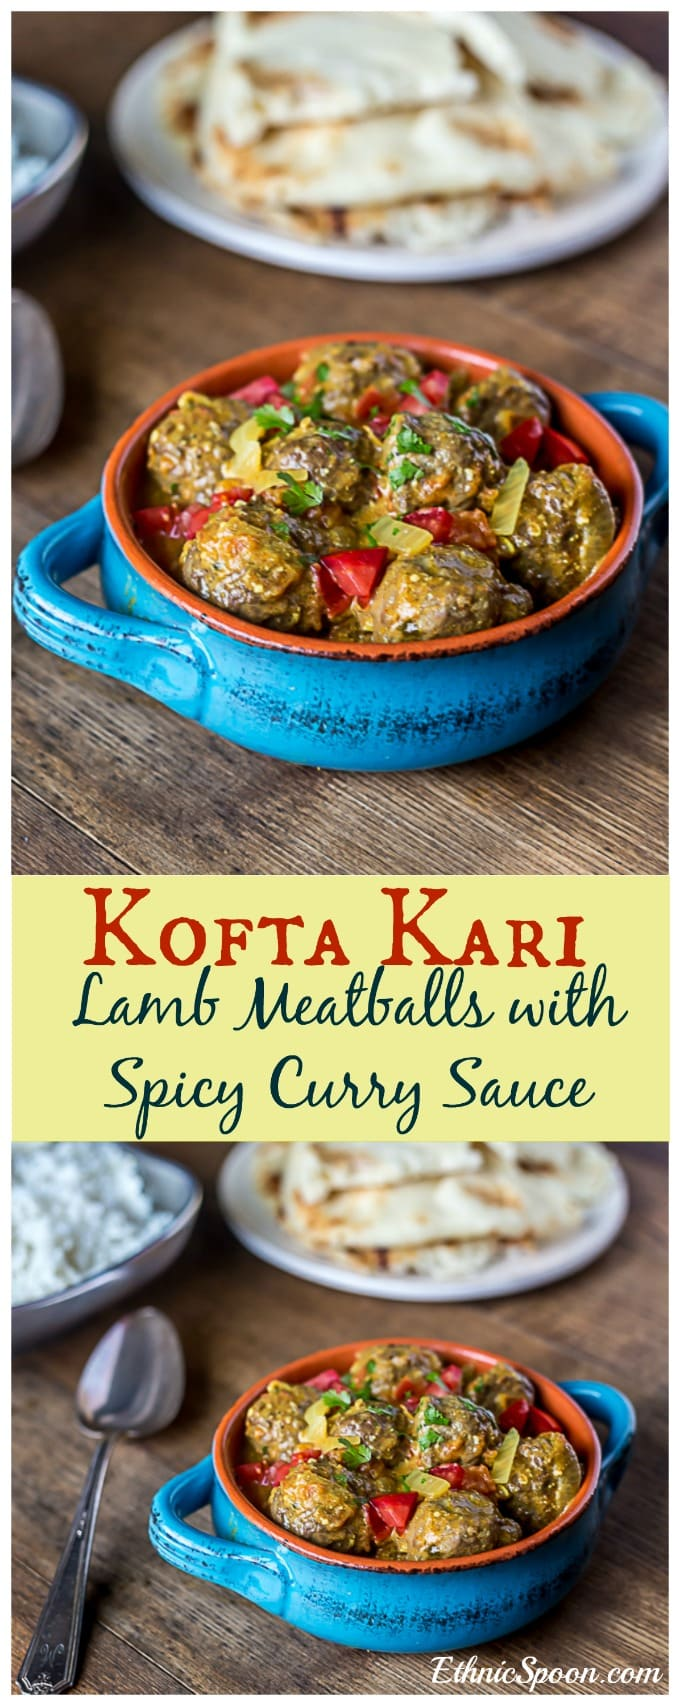 Kofta kari: Indian lamb meatballs with a curry sauce. Spicy and delicious! | ethnicspoon.com